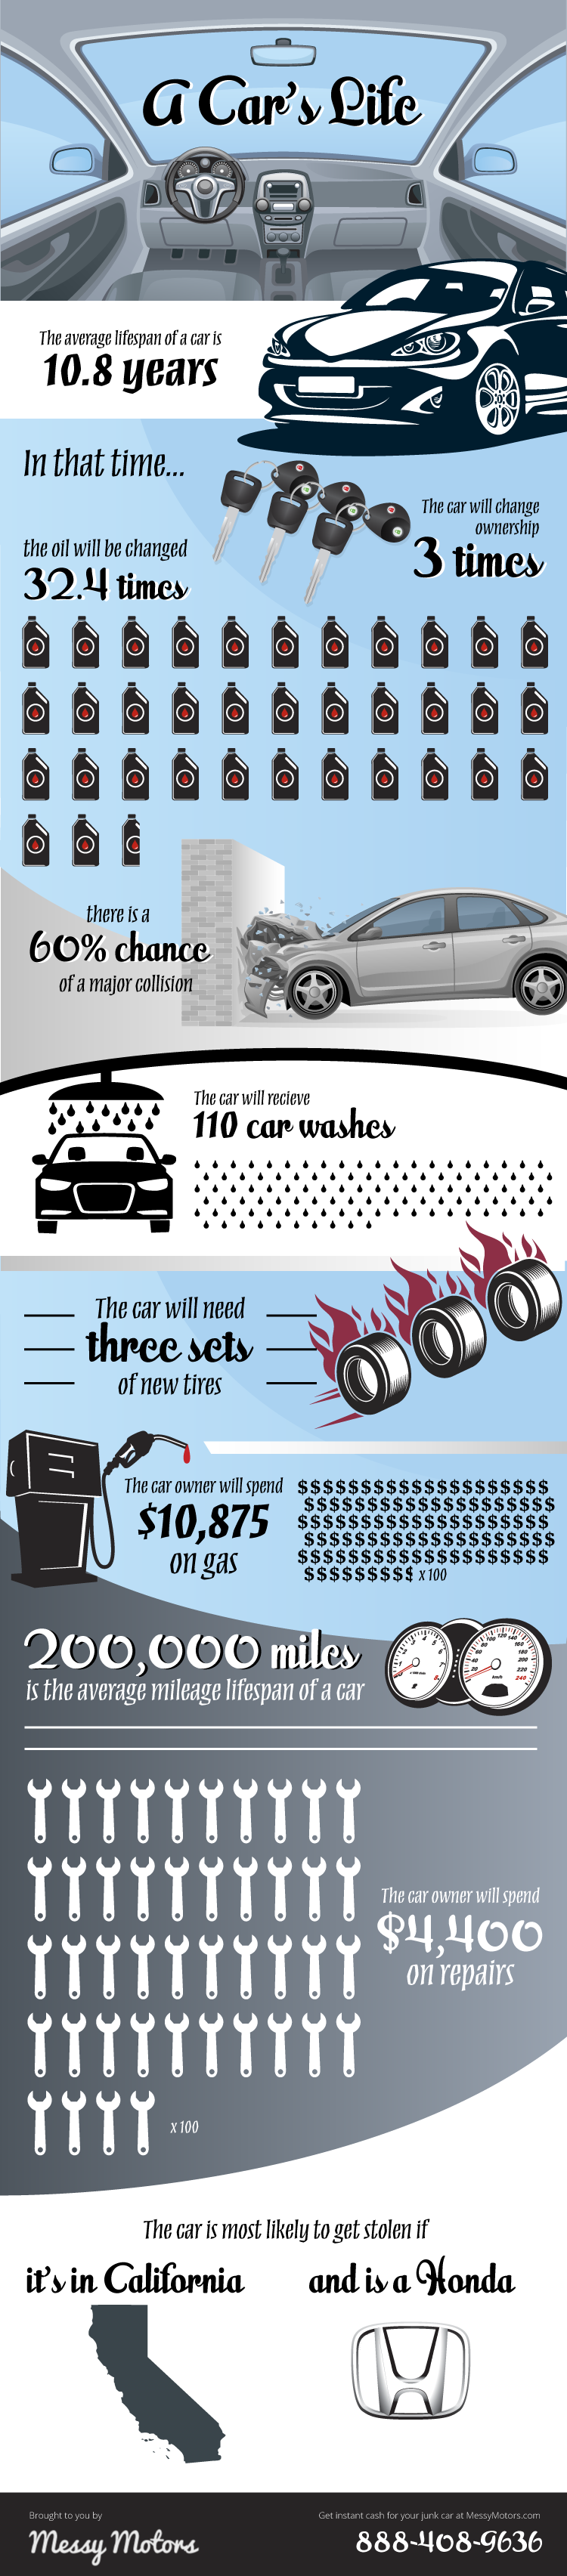 A Car's Life - Infographic